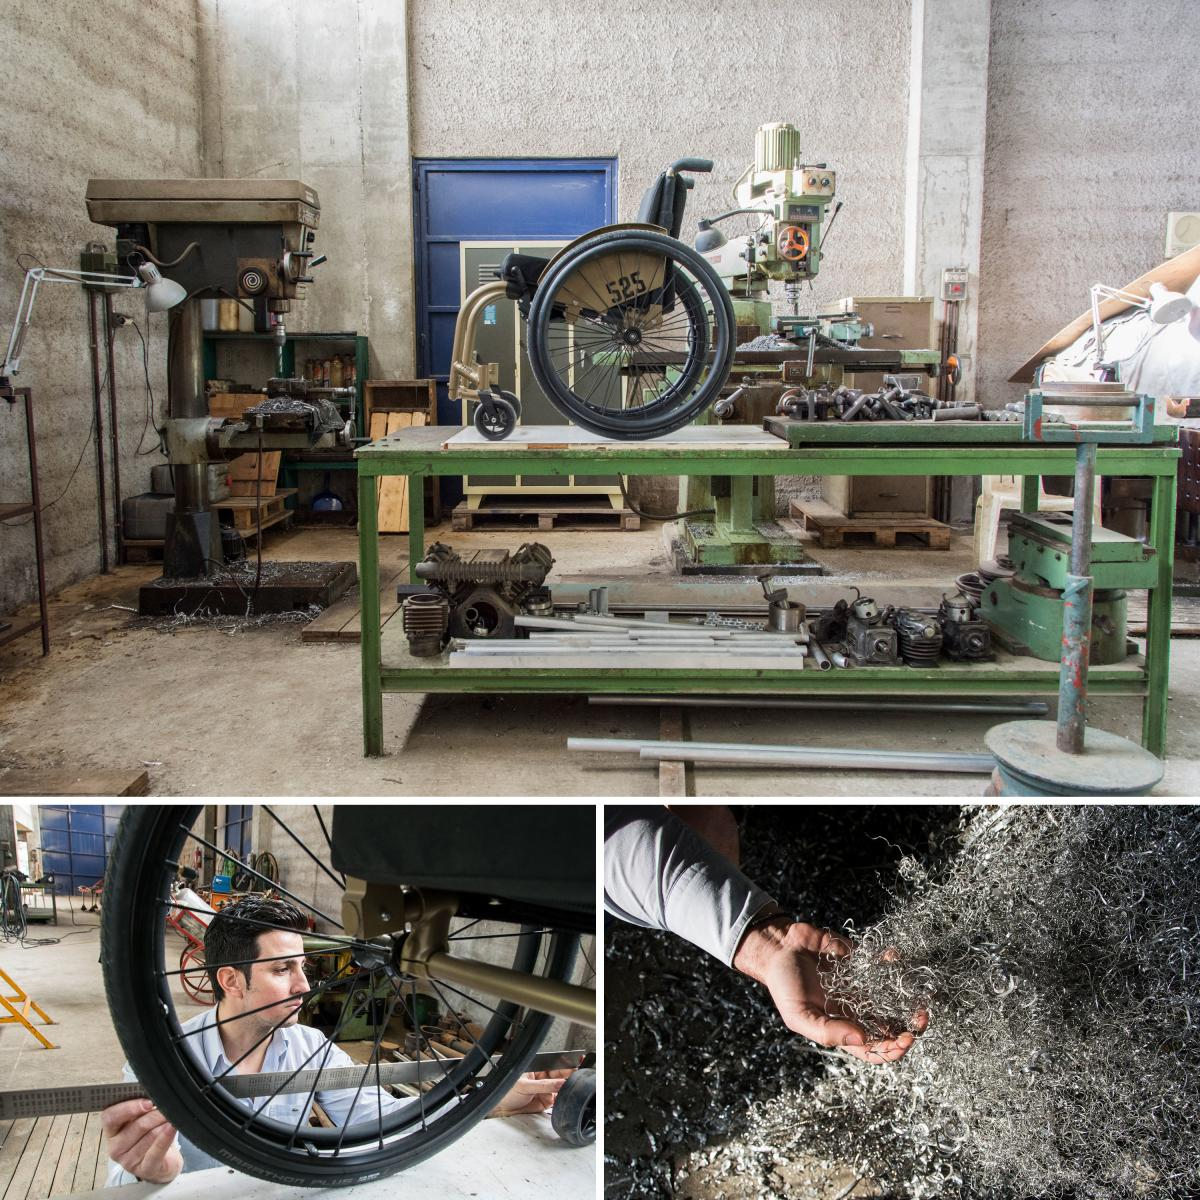 Top: A completed wheelchair sits on a bench at the 525 Handmade Wheelchairs factory in Markopoulo, about 20 miles outside of Athens. Left: Faidros Panagopoulos, owner of 525 Handmade Wheelchairs, measures the length of the wheelchair to see if everything